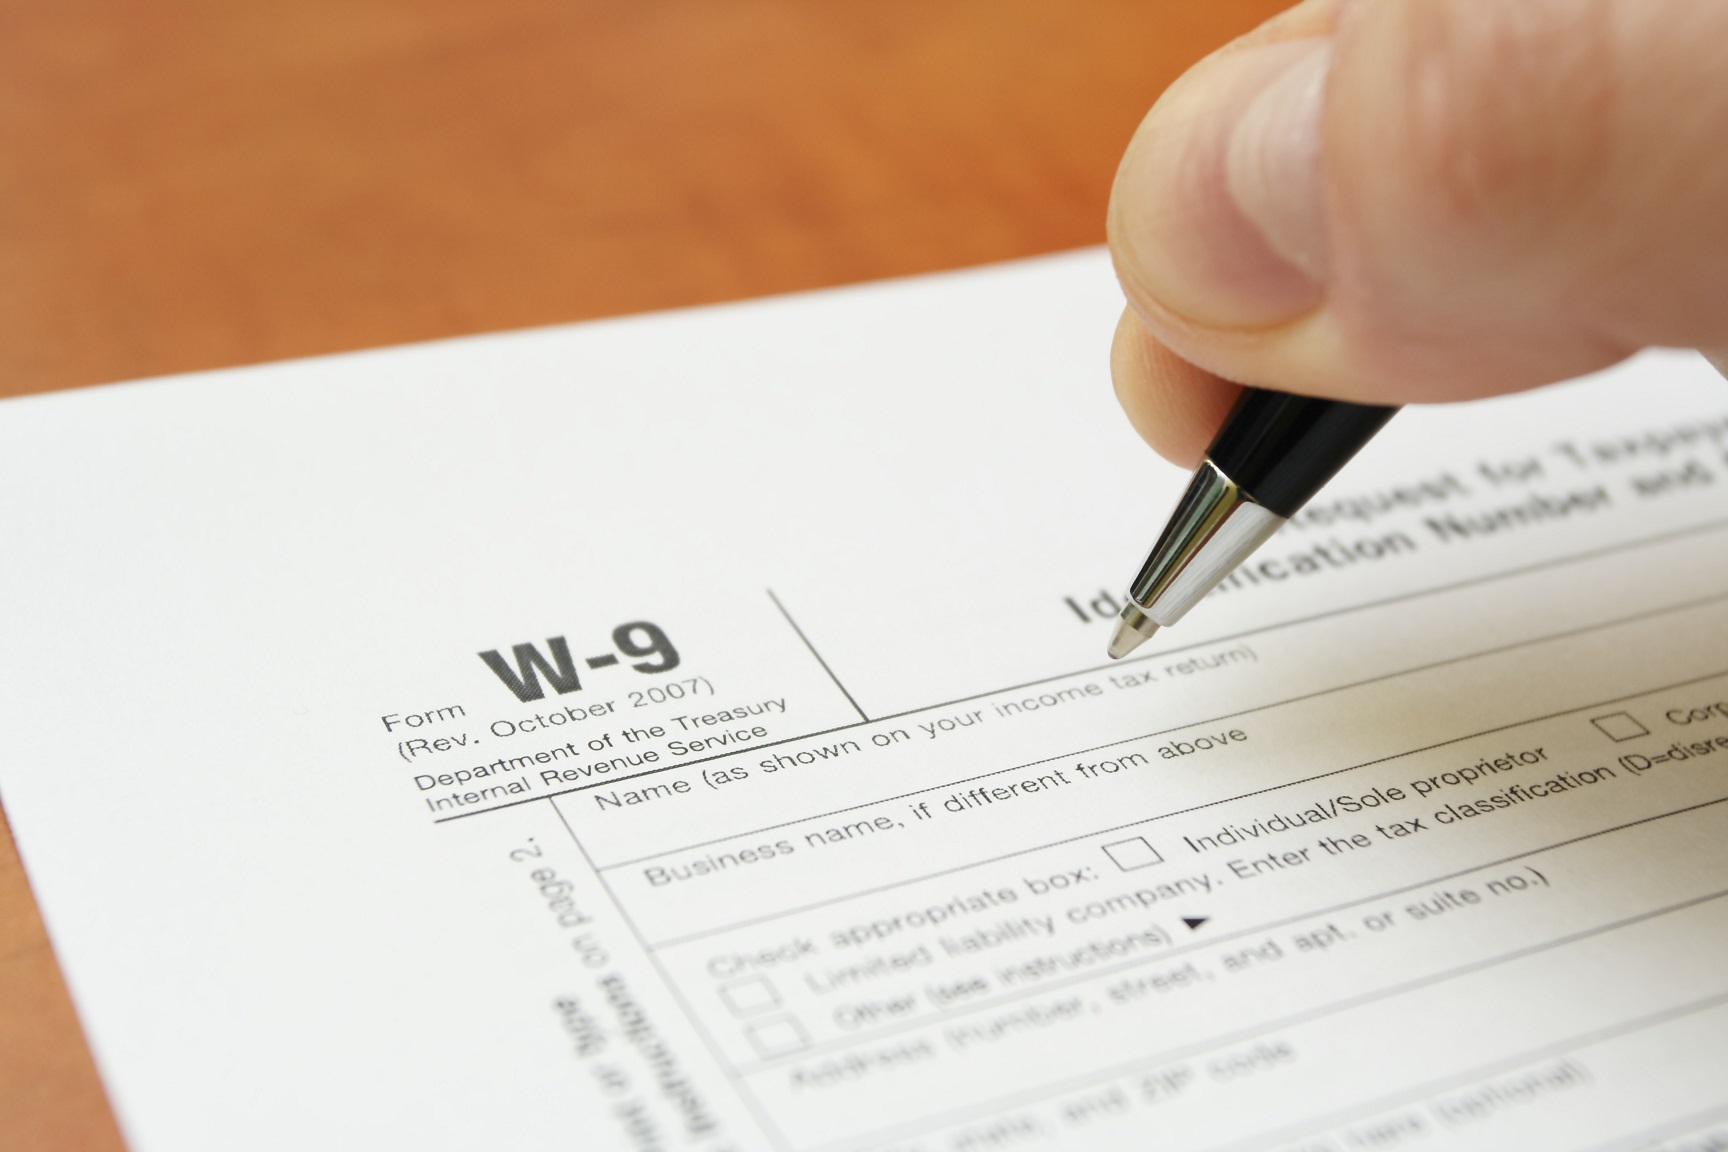 What Is A W-9 Tax Form? | H&R Block with regard to 2021 W-9 Form